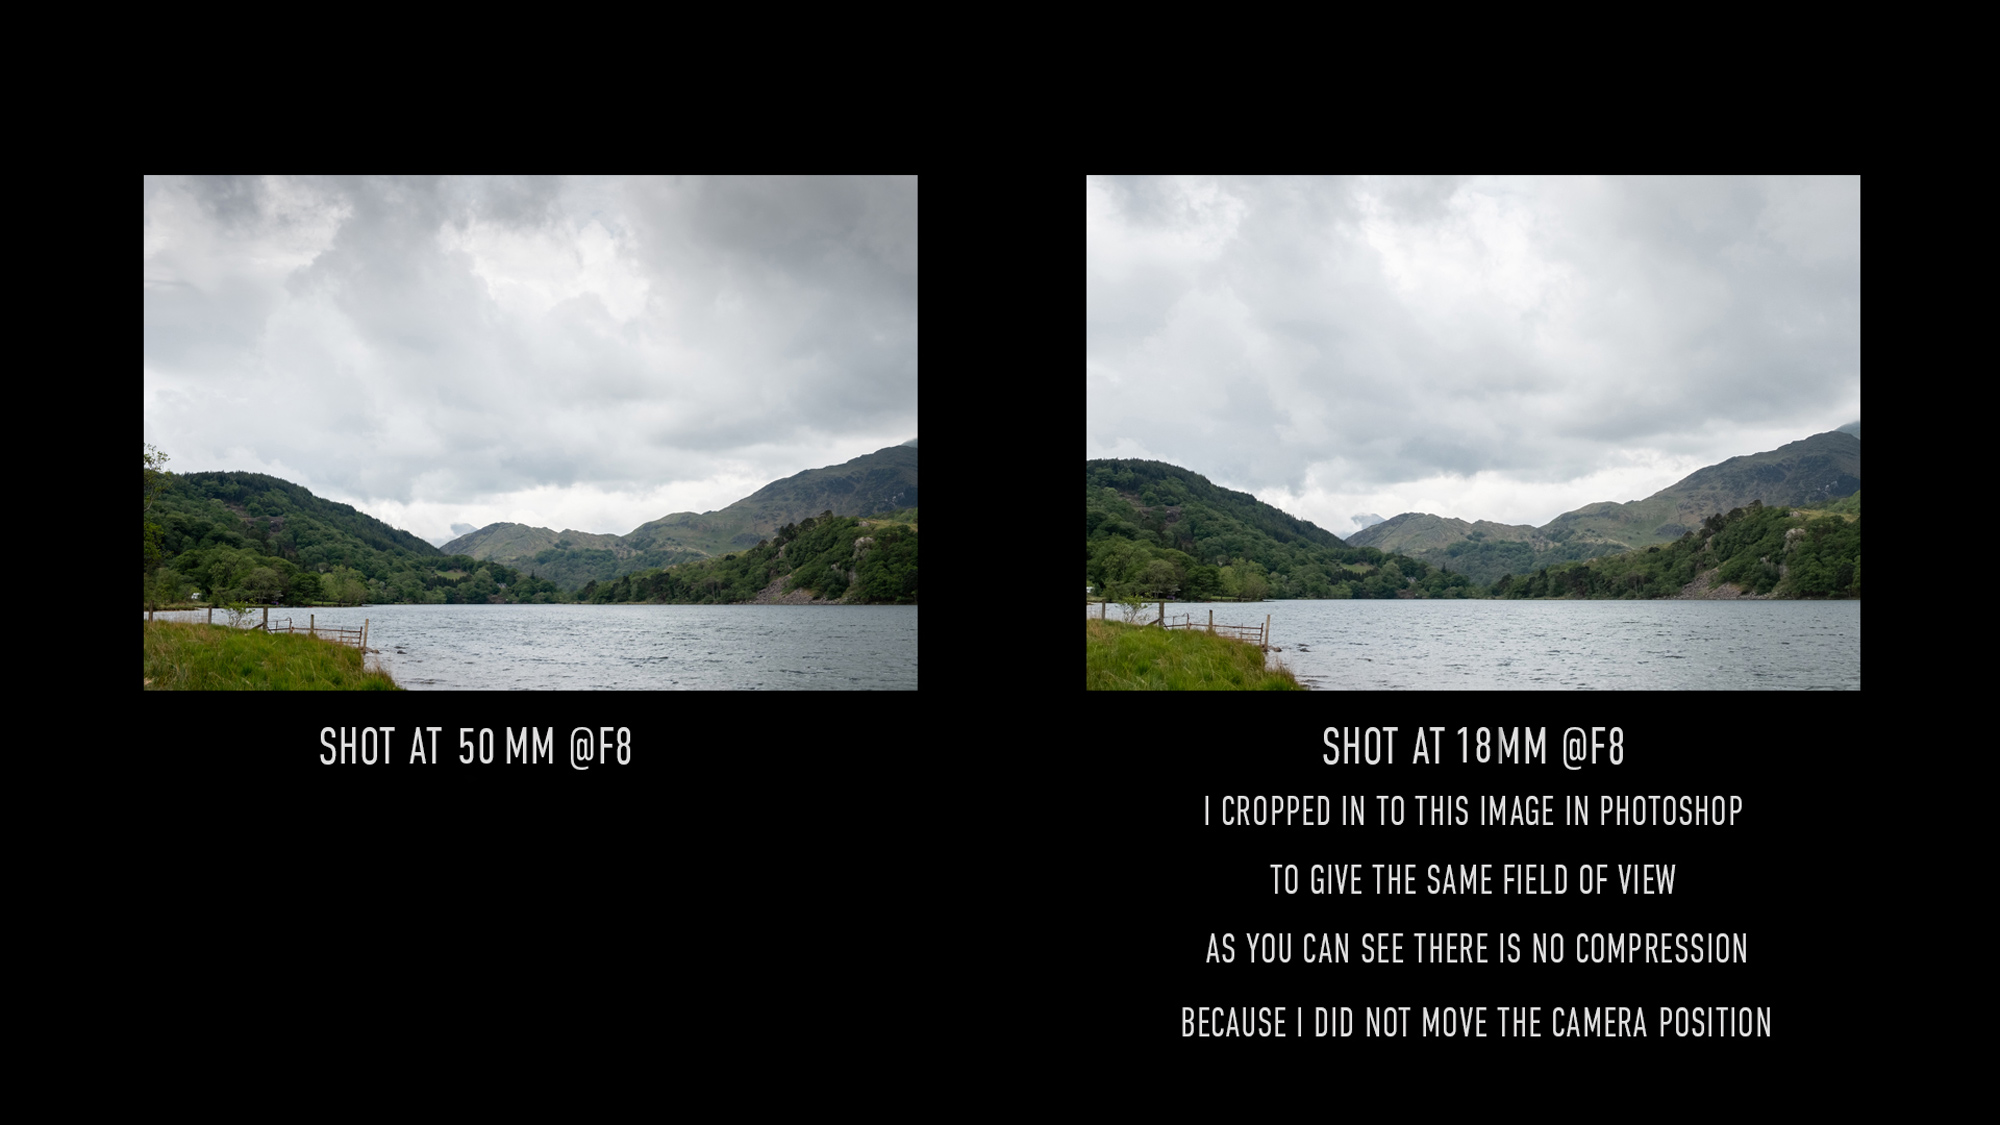 How To Choose The Best Focal Length For Landscape Photography Ian Worth